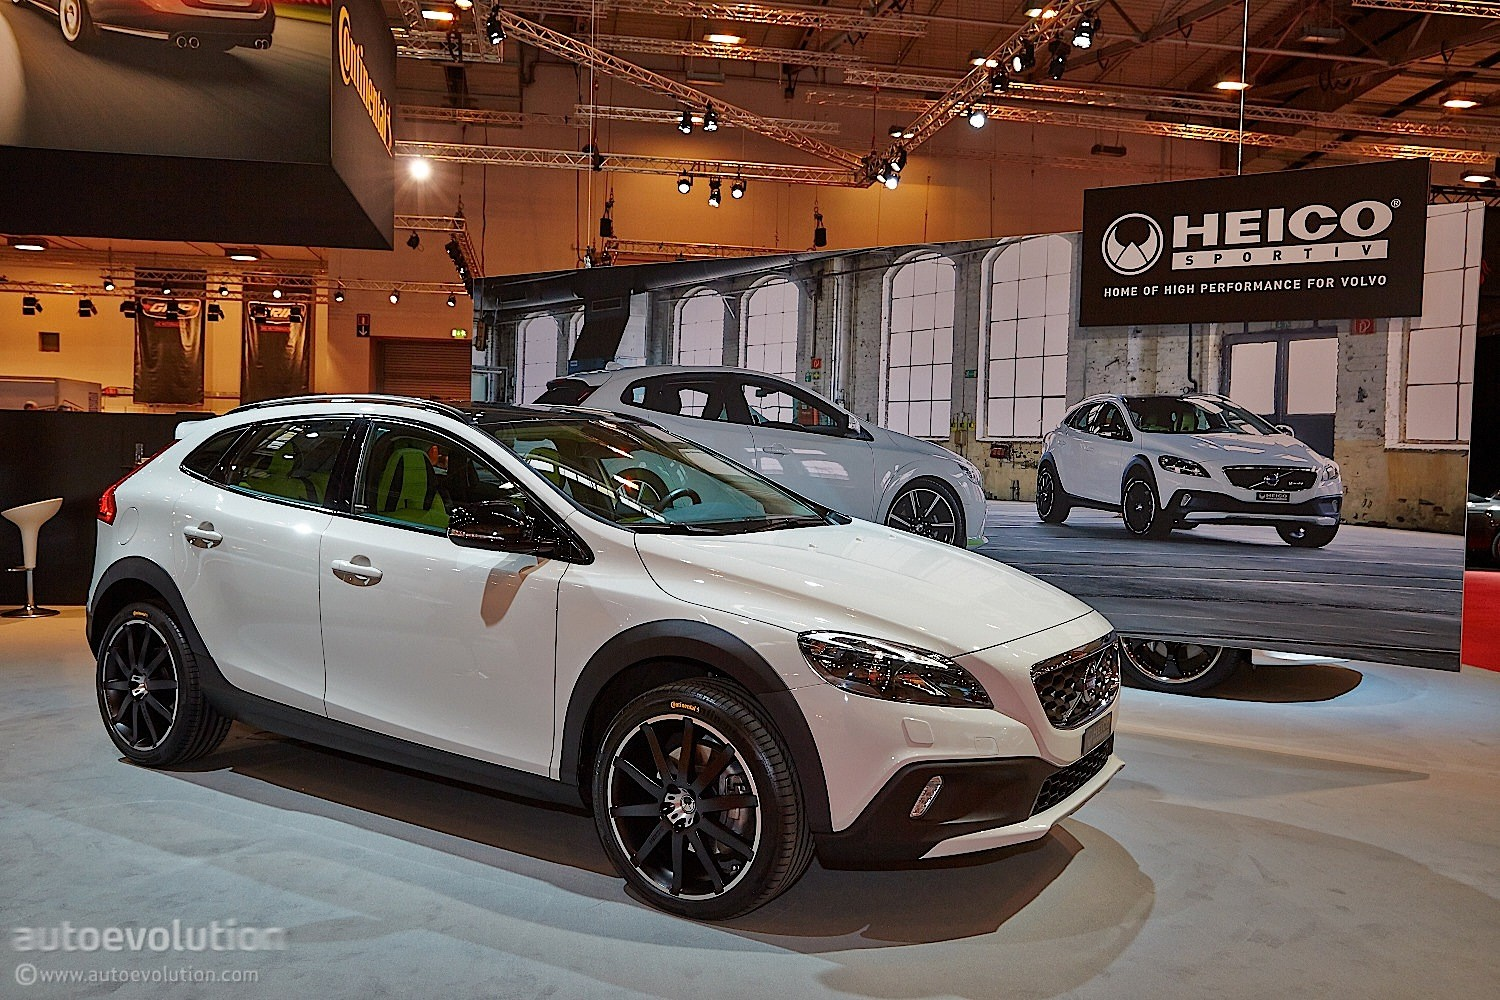 Volvo Tuner Heico Sportiv Brings A Trio Of Swedes At Essen